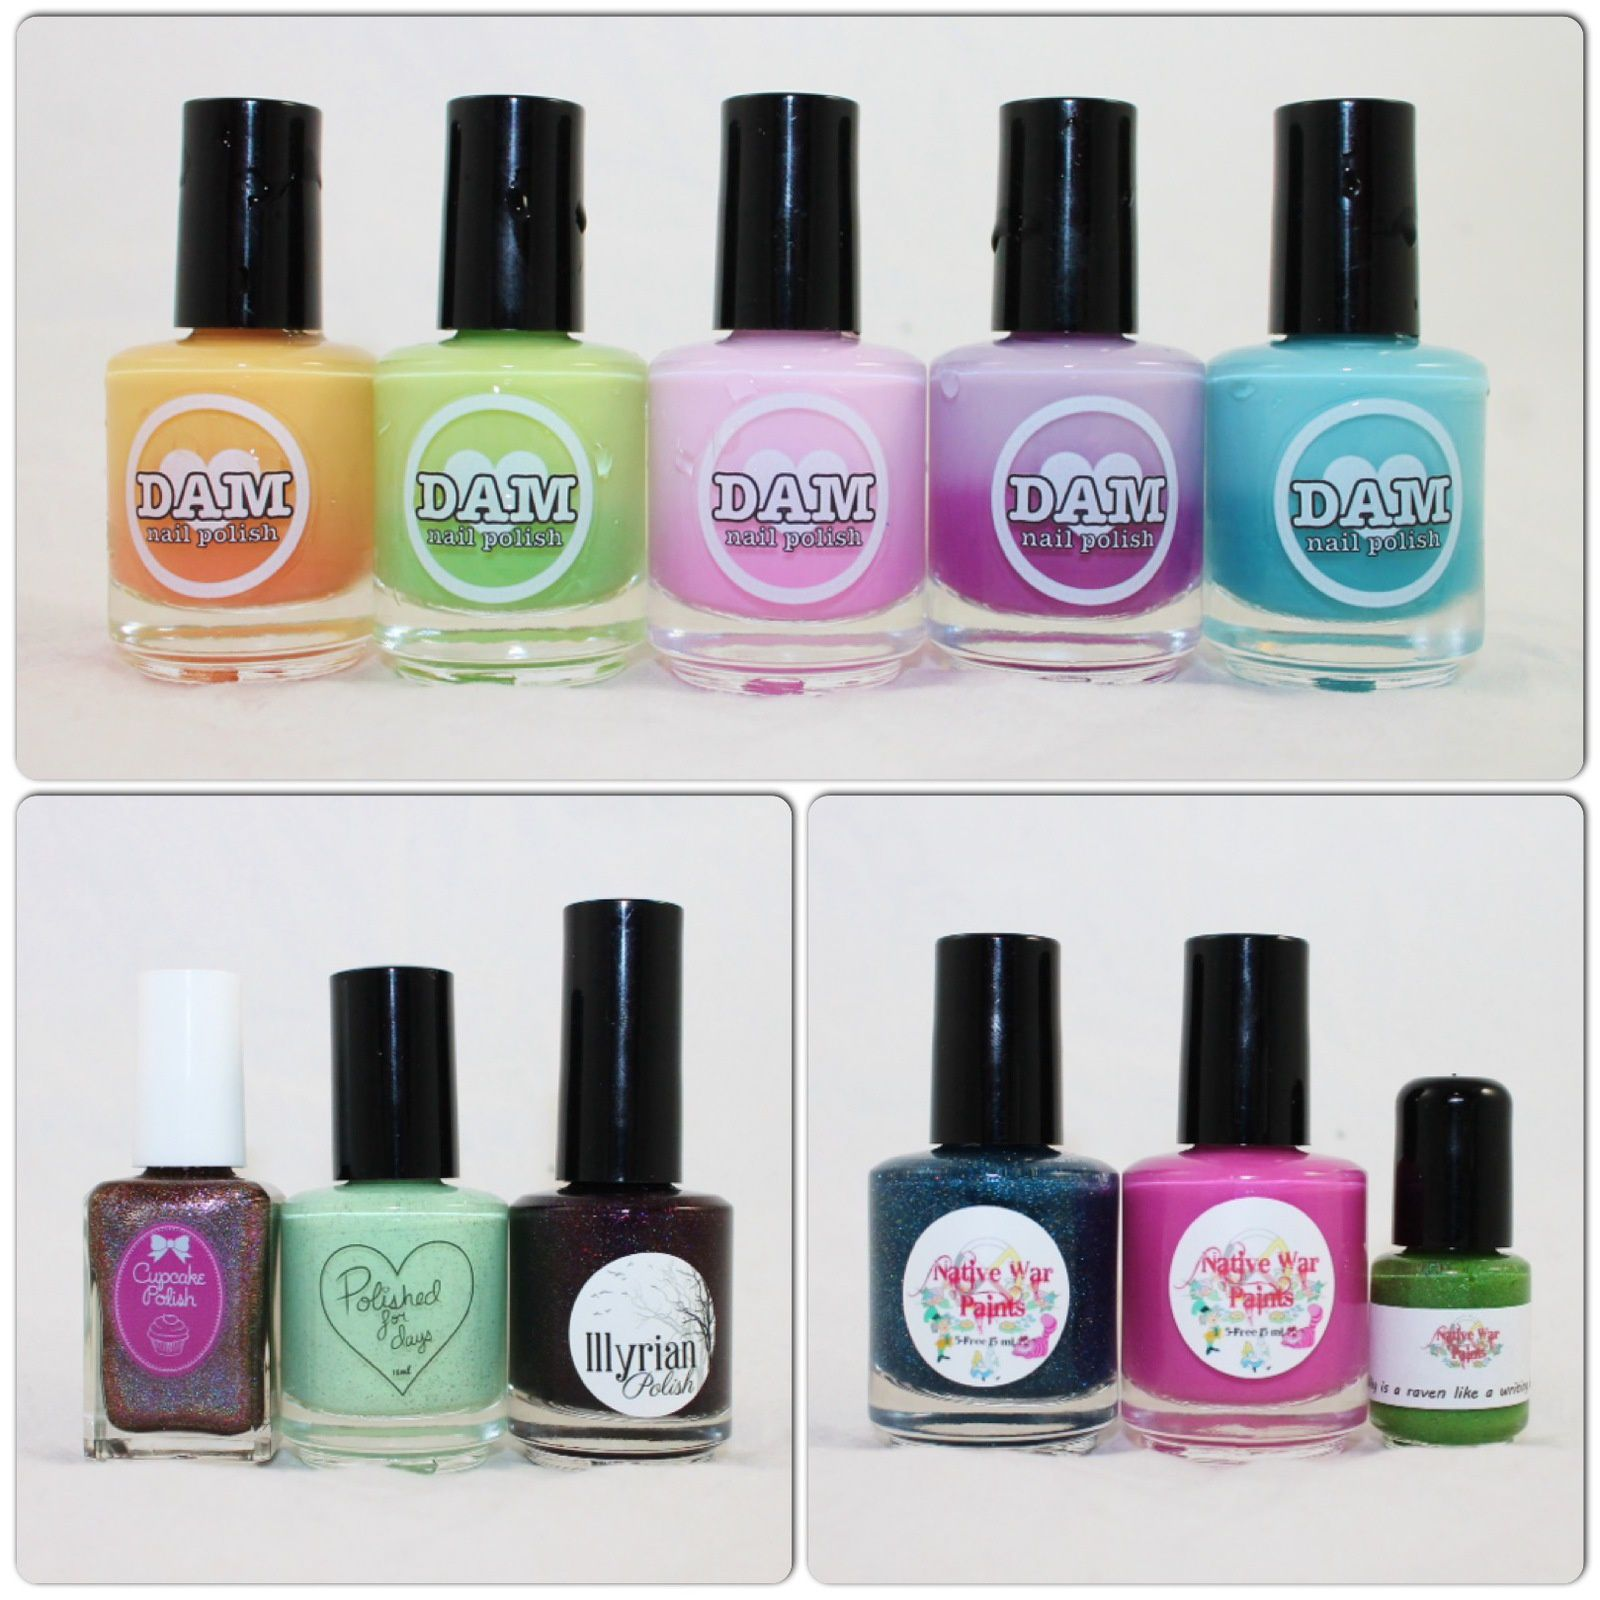 Dam Polish Citrus Sherbert, This Magic Mo-Mint, Pinky Promise, Iris of the Beholder, Teal Next Time. For the Love of Polish May 2016. Native War Paint Box May 2016.